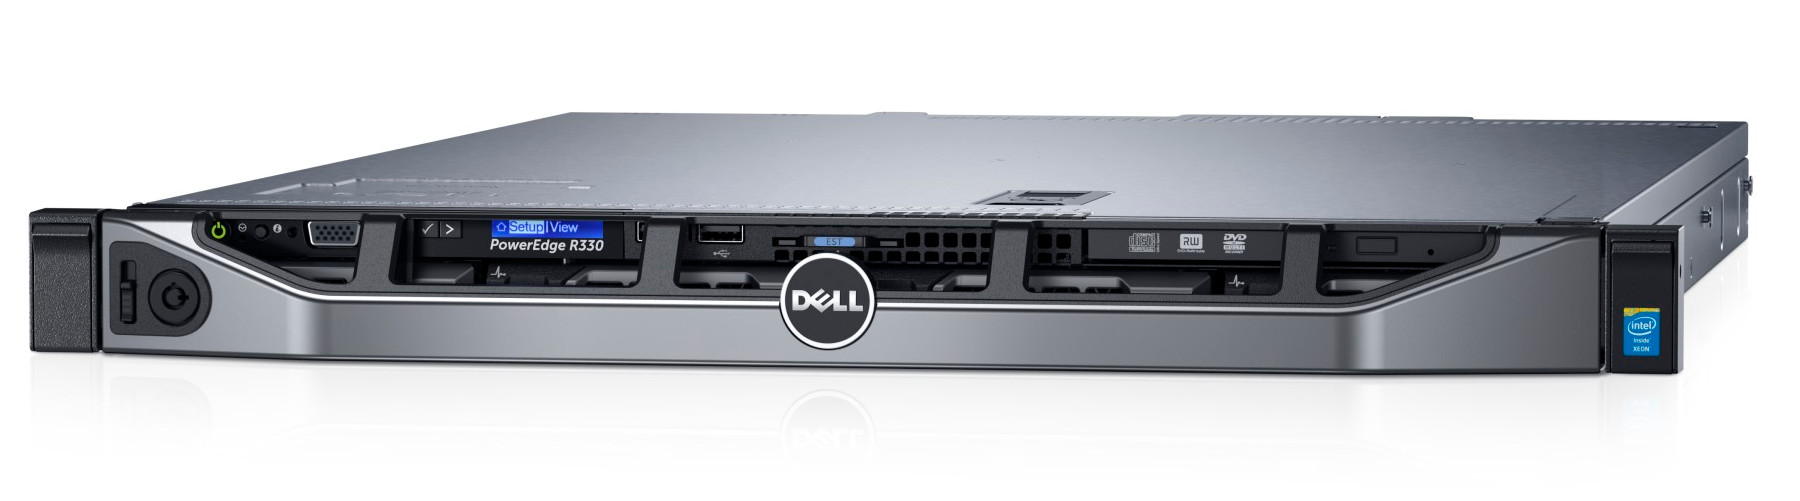 Máy chủ Dell PowerEdge R330 (8x2.5